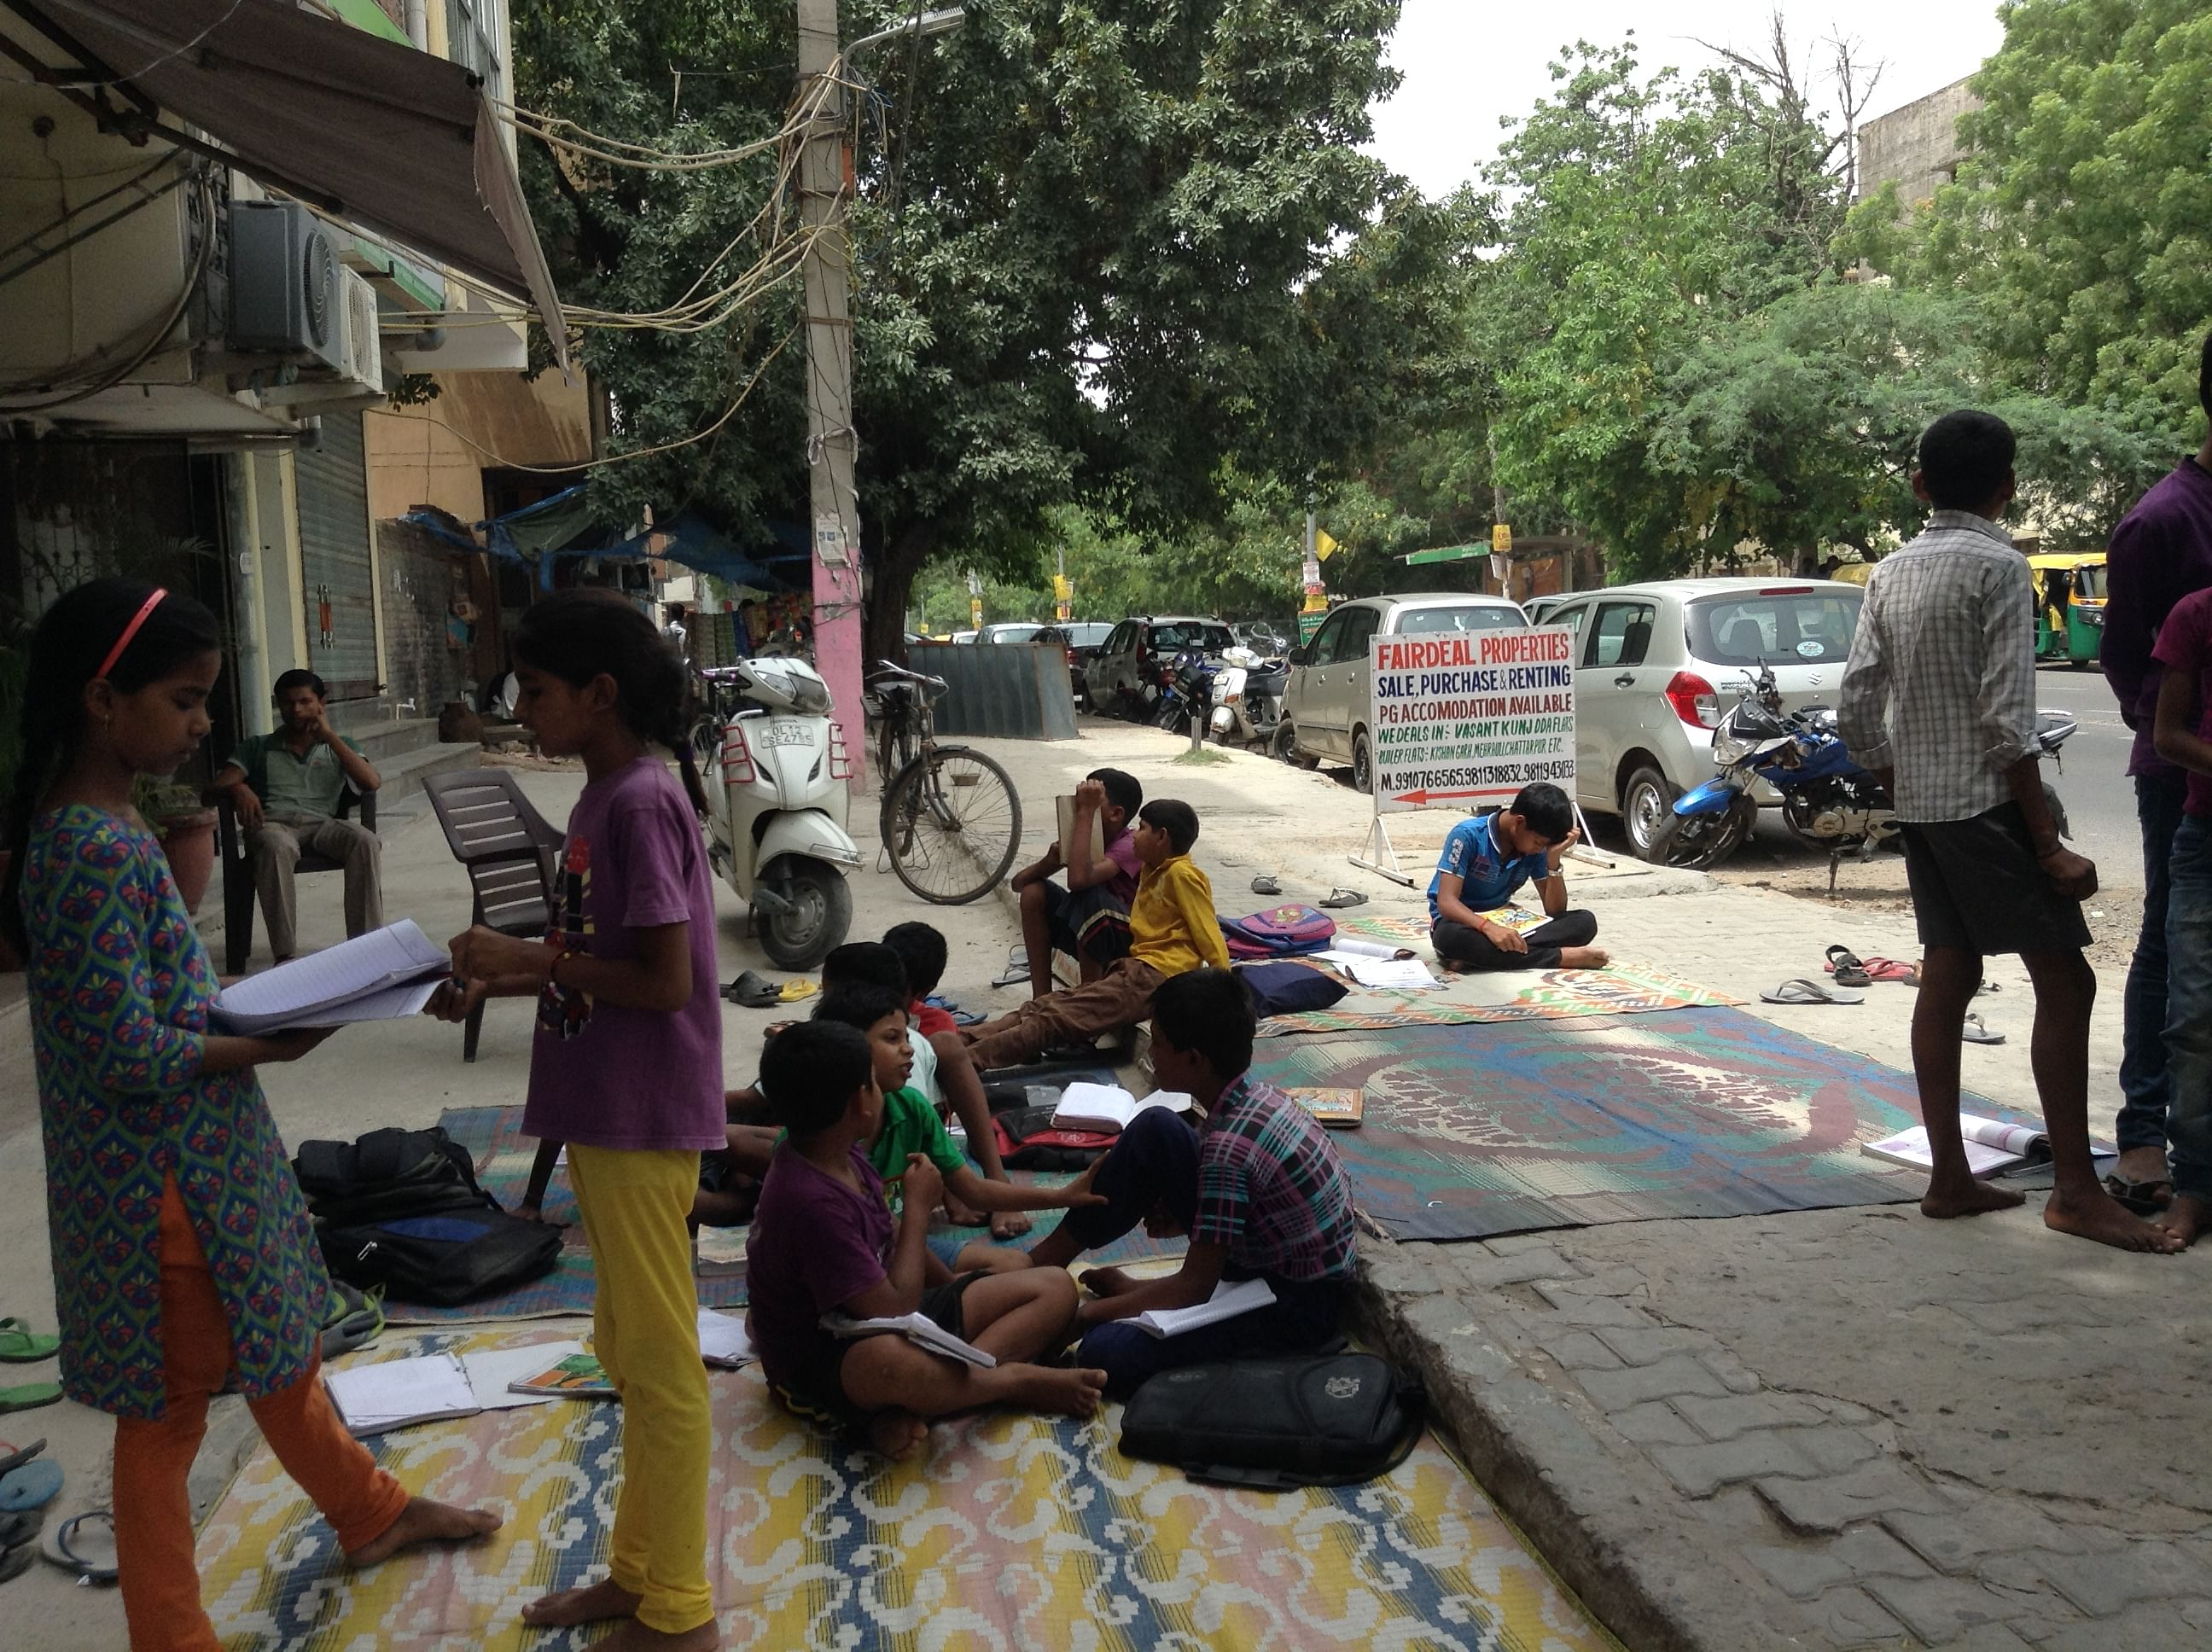 Children reading and learning on the pavement class-space